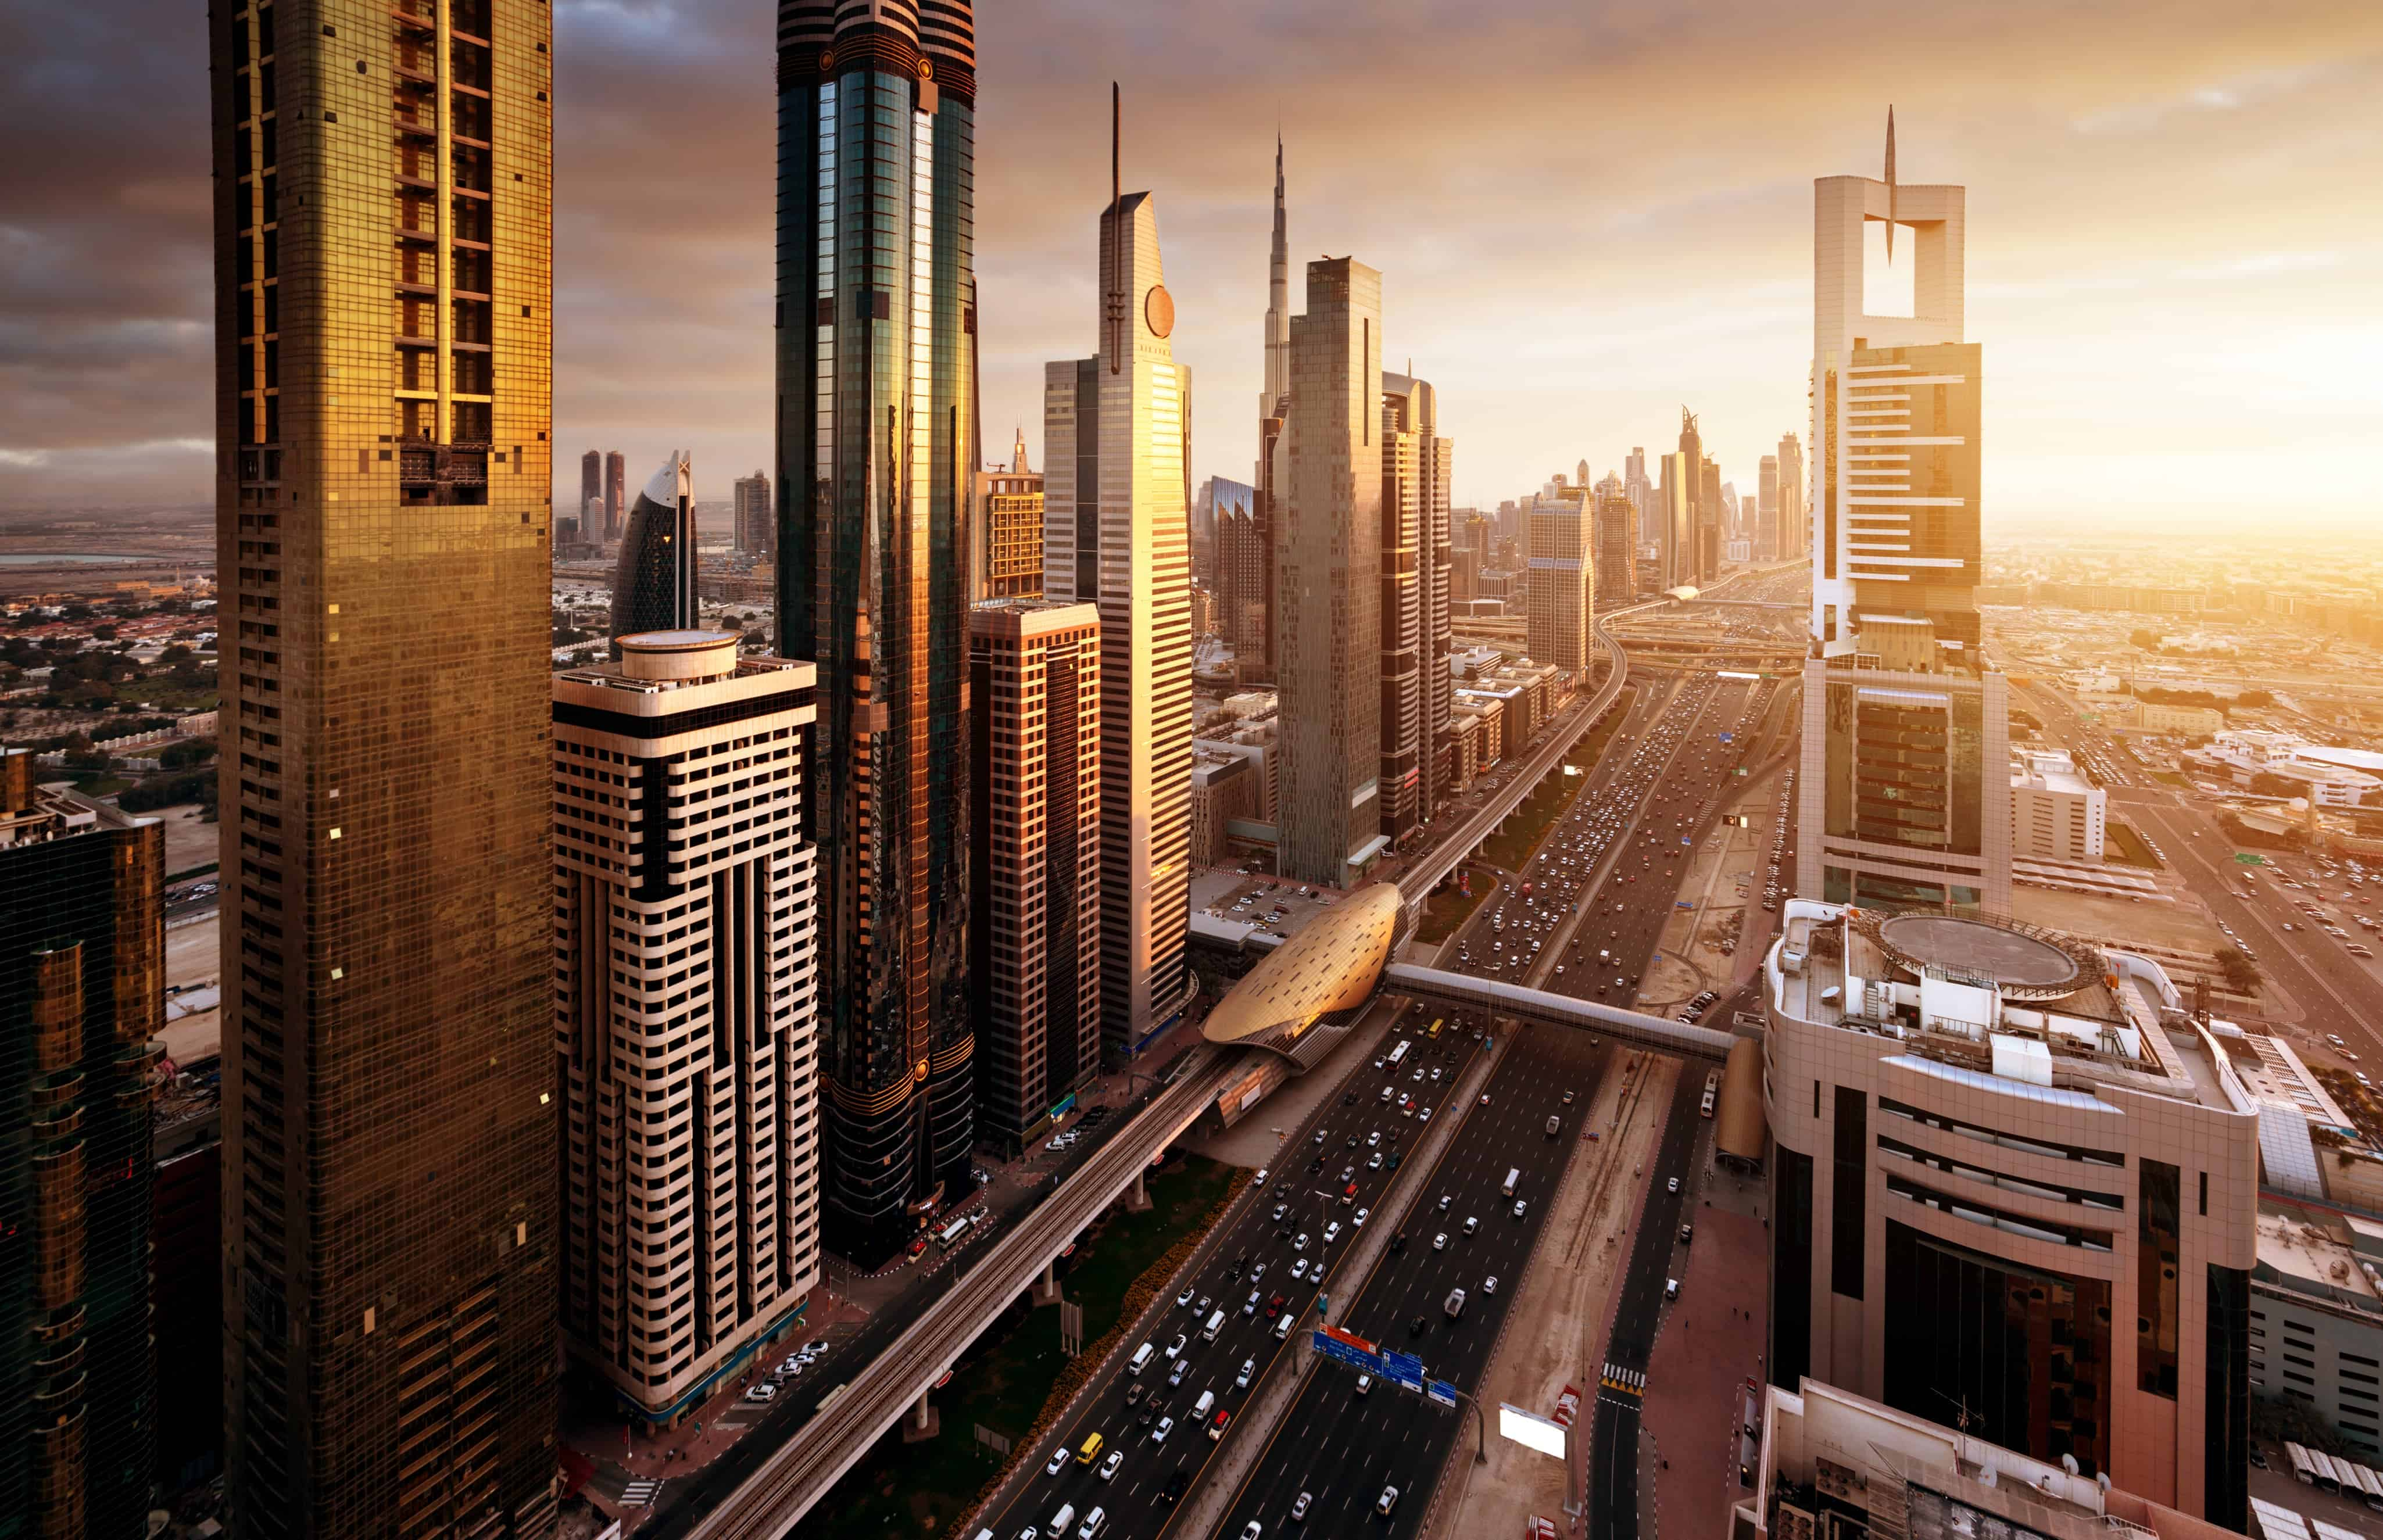 Dubai | An Exciting Lifestyle that City offers